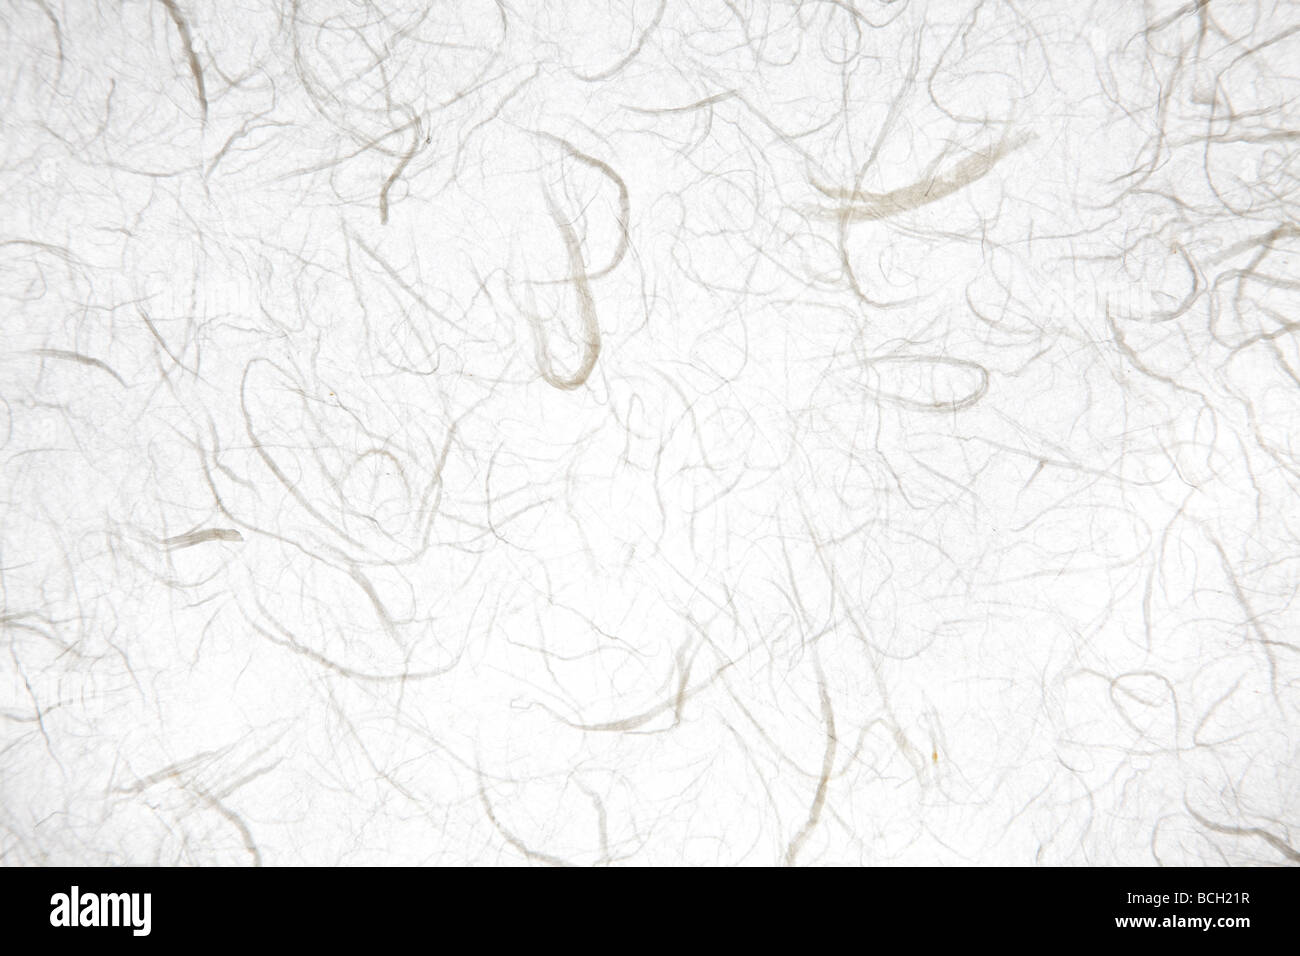 handmade paper background with textures stock photo 24961043 alamy